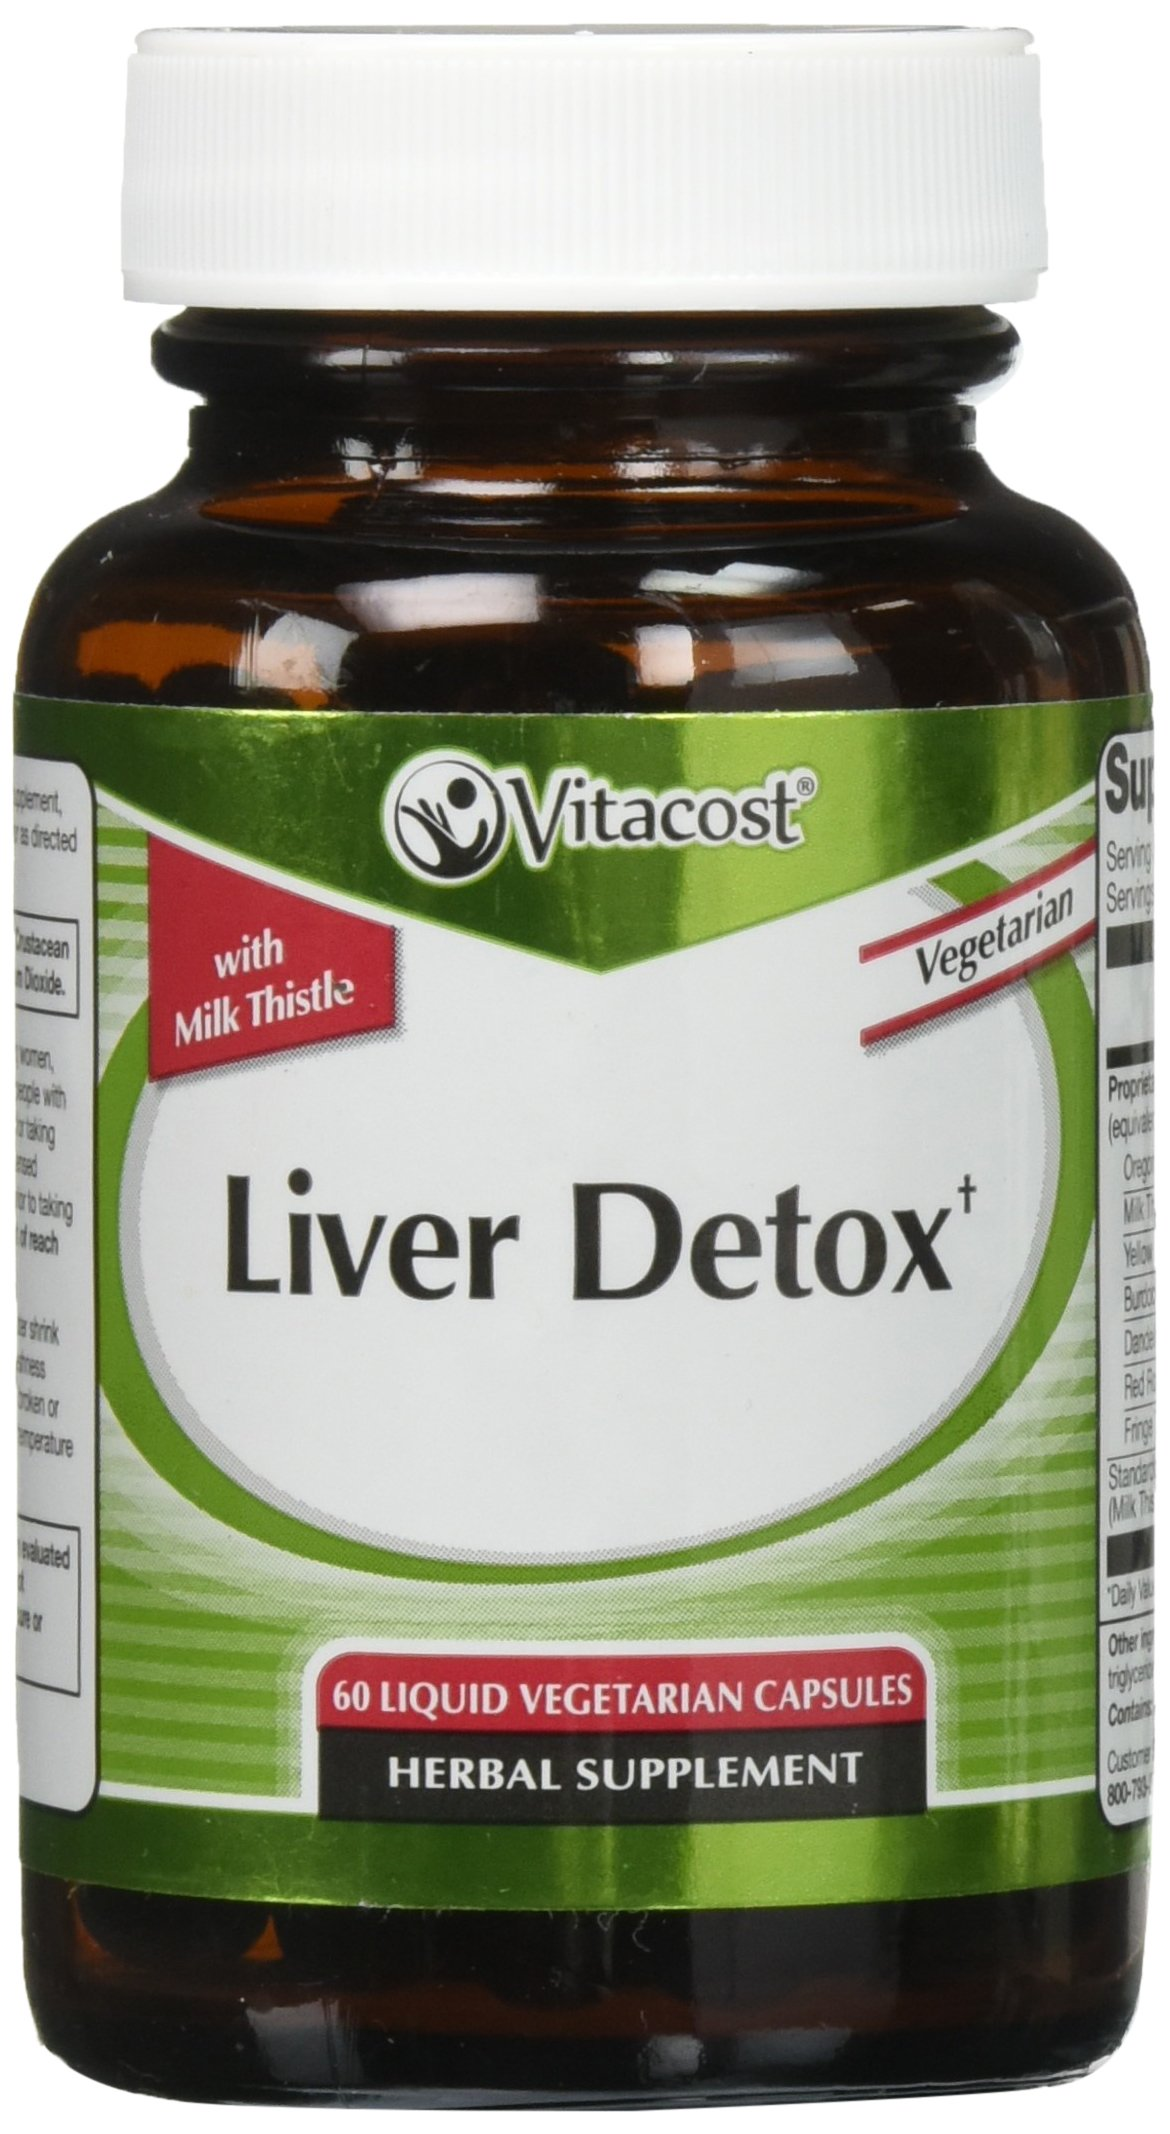 Vitacost Liver Detox -- 60 Vegetarian Capsules by Nutraceutical Sciences Institute (NSI)